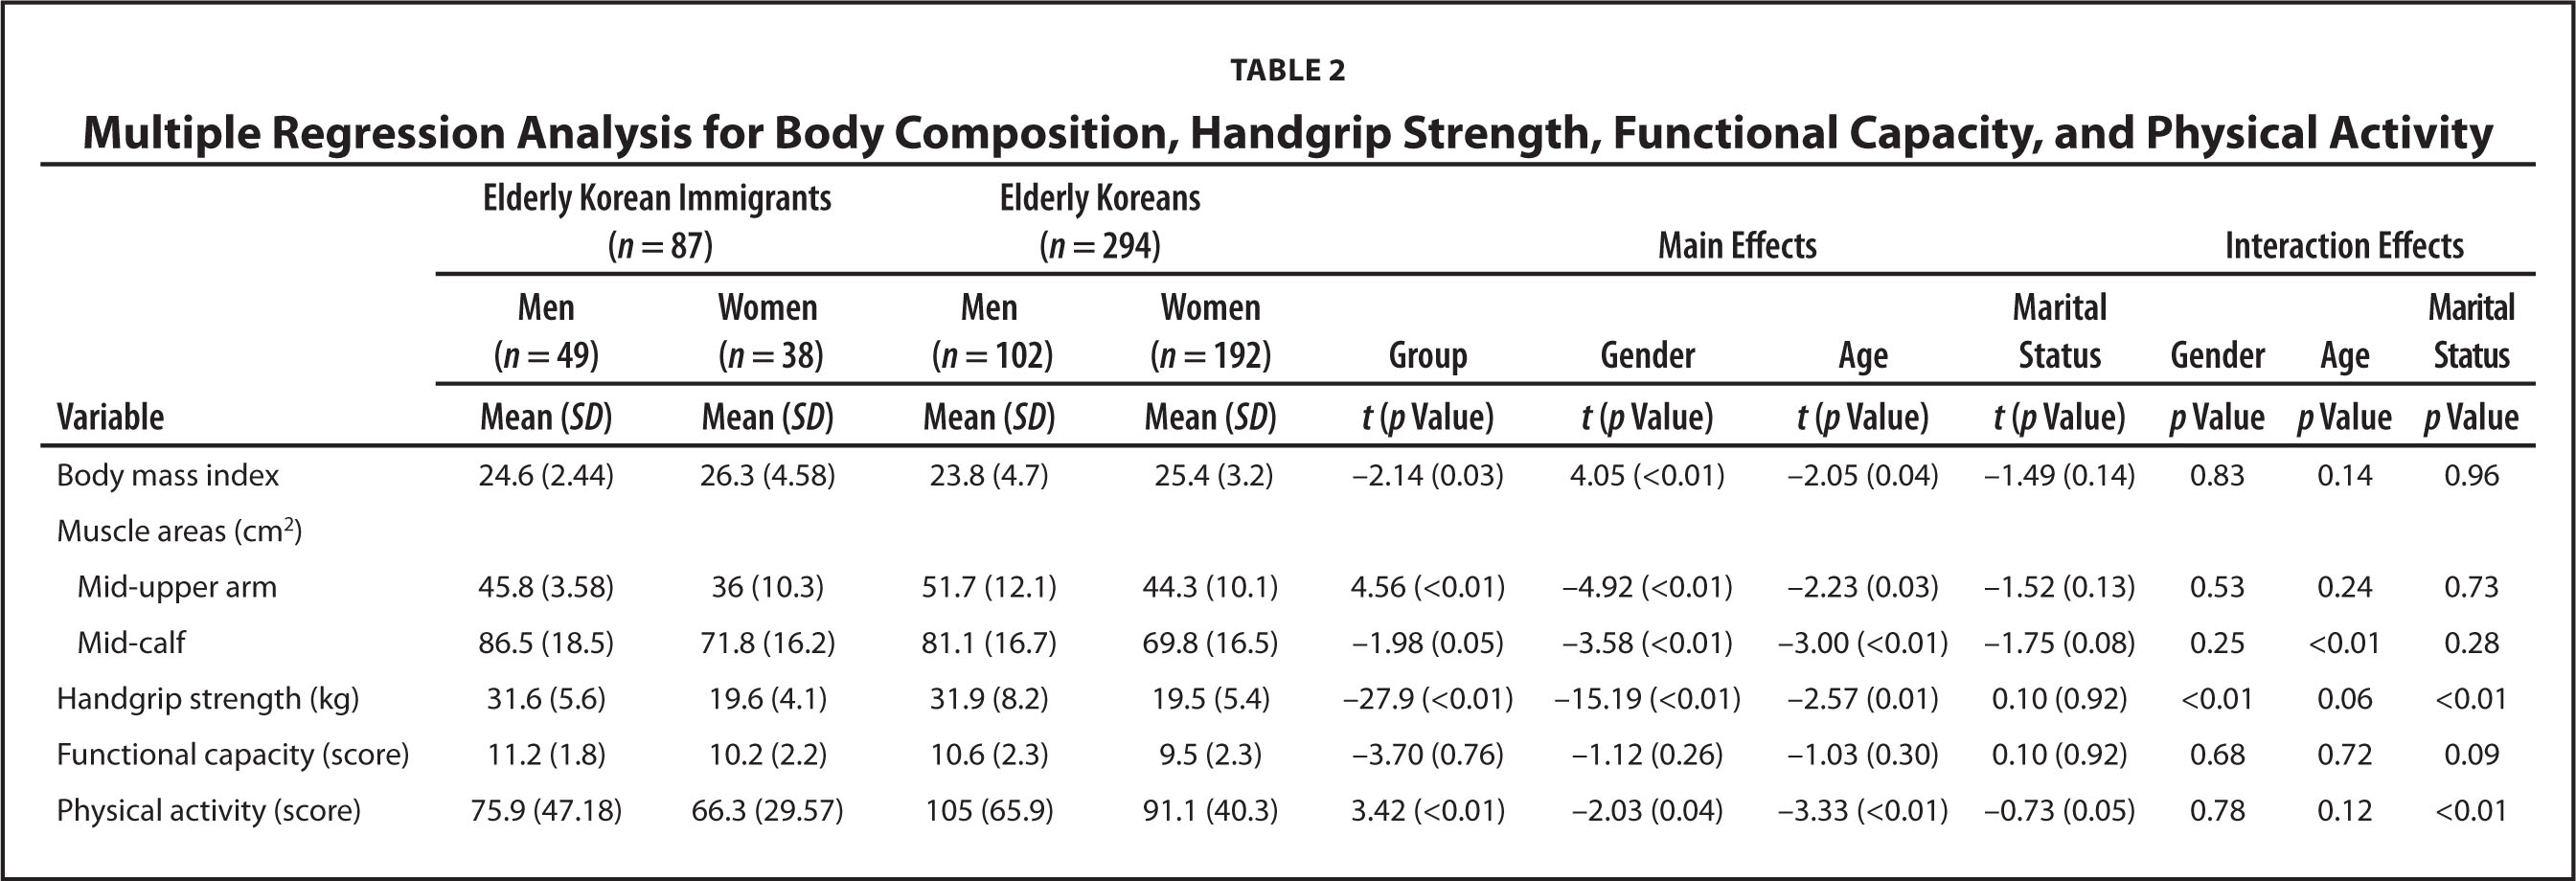 Multiple Regression Analysis for Body Composition, Handgrip Strength, Functional Capacity, and Physical Activity